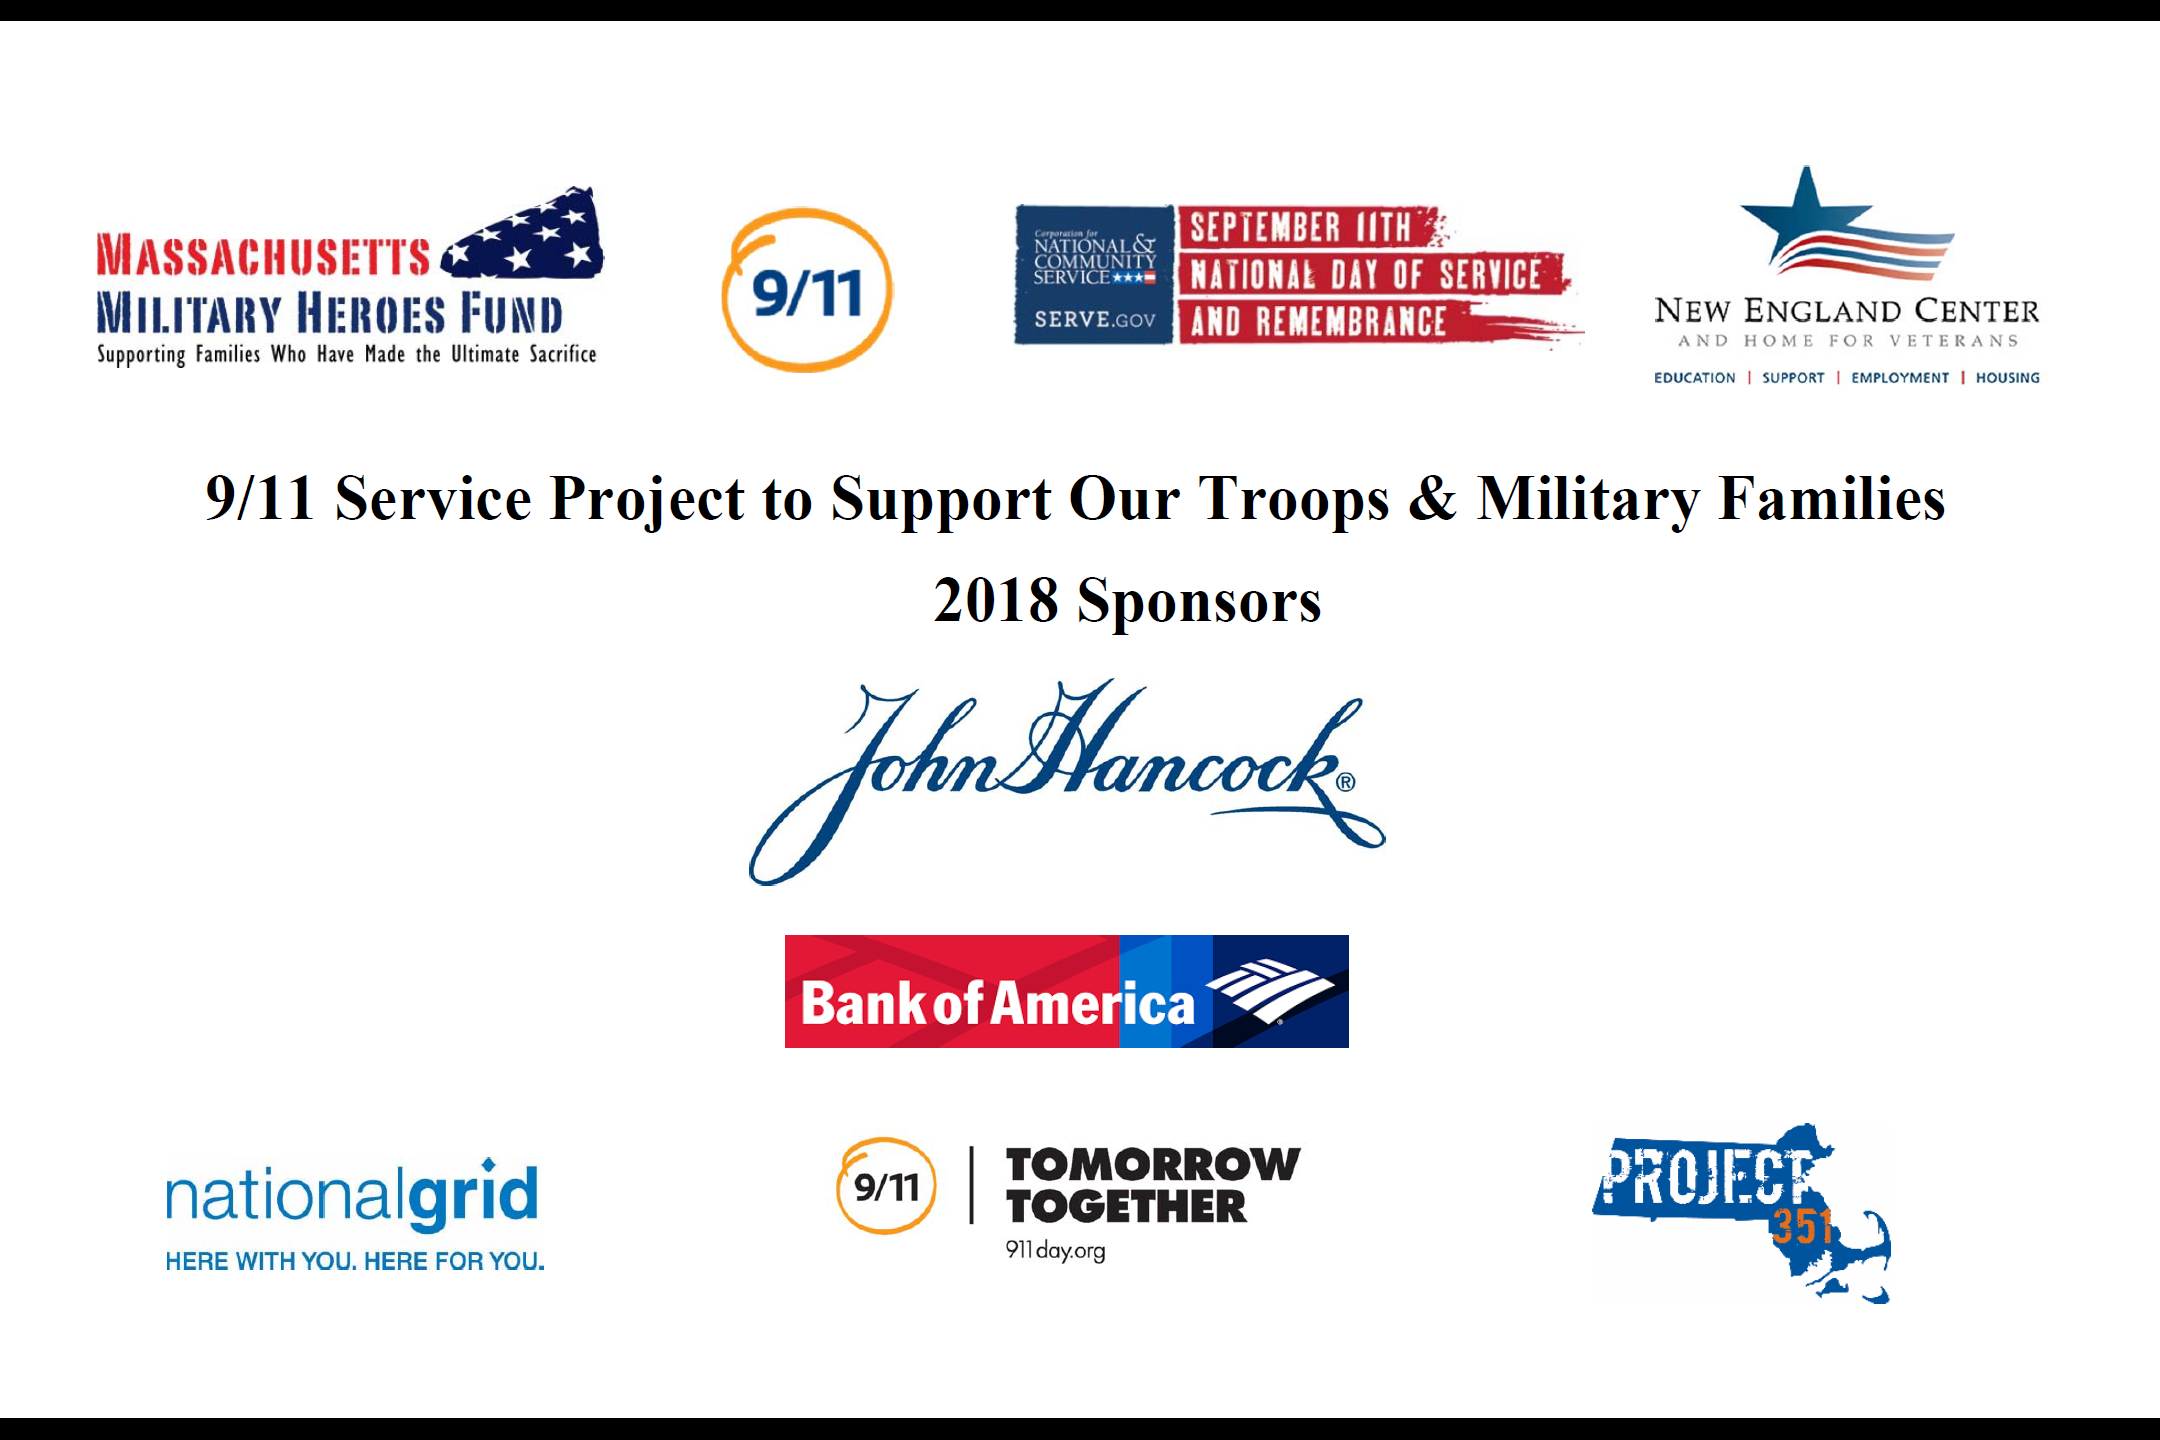 9 11 Service Project To Support Our Troops Families